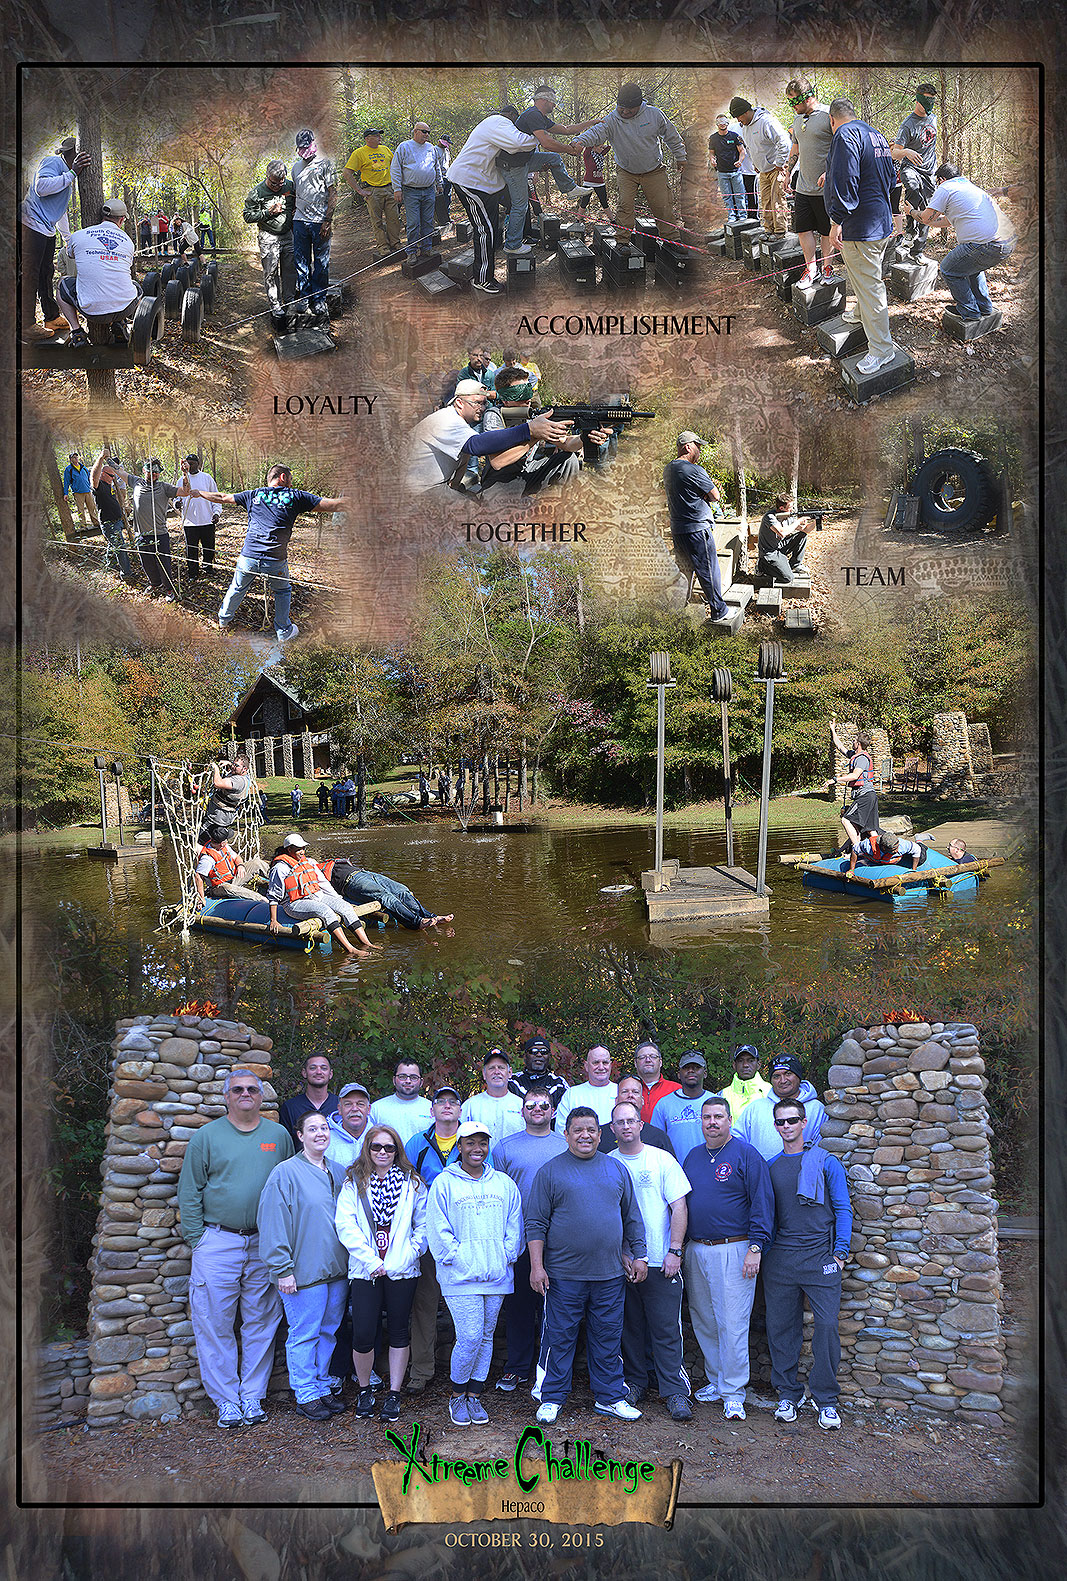 Hepaco at Xtreeme Challenges 17 acre team building center in Charlotte North Carolina